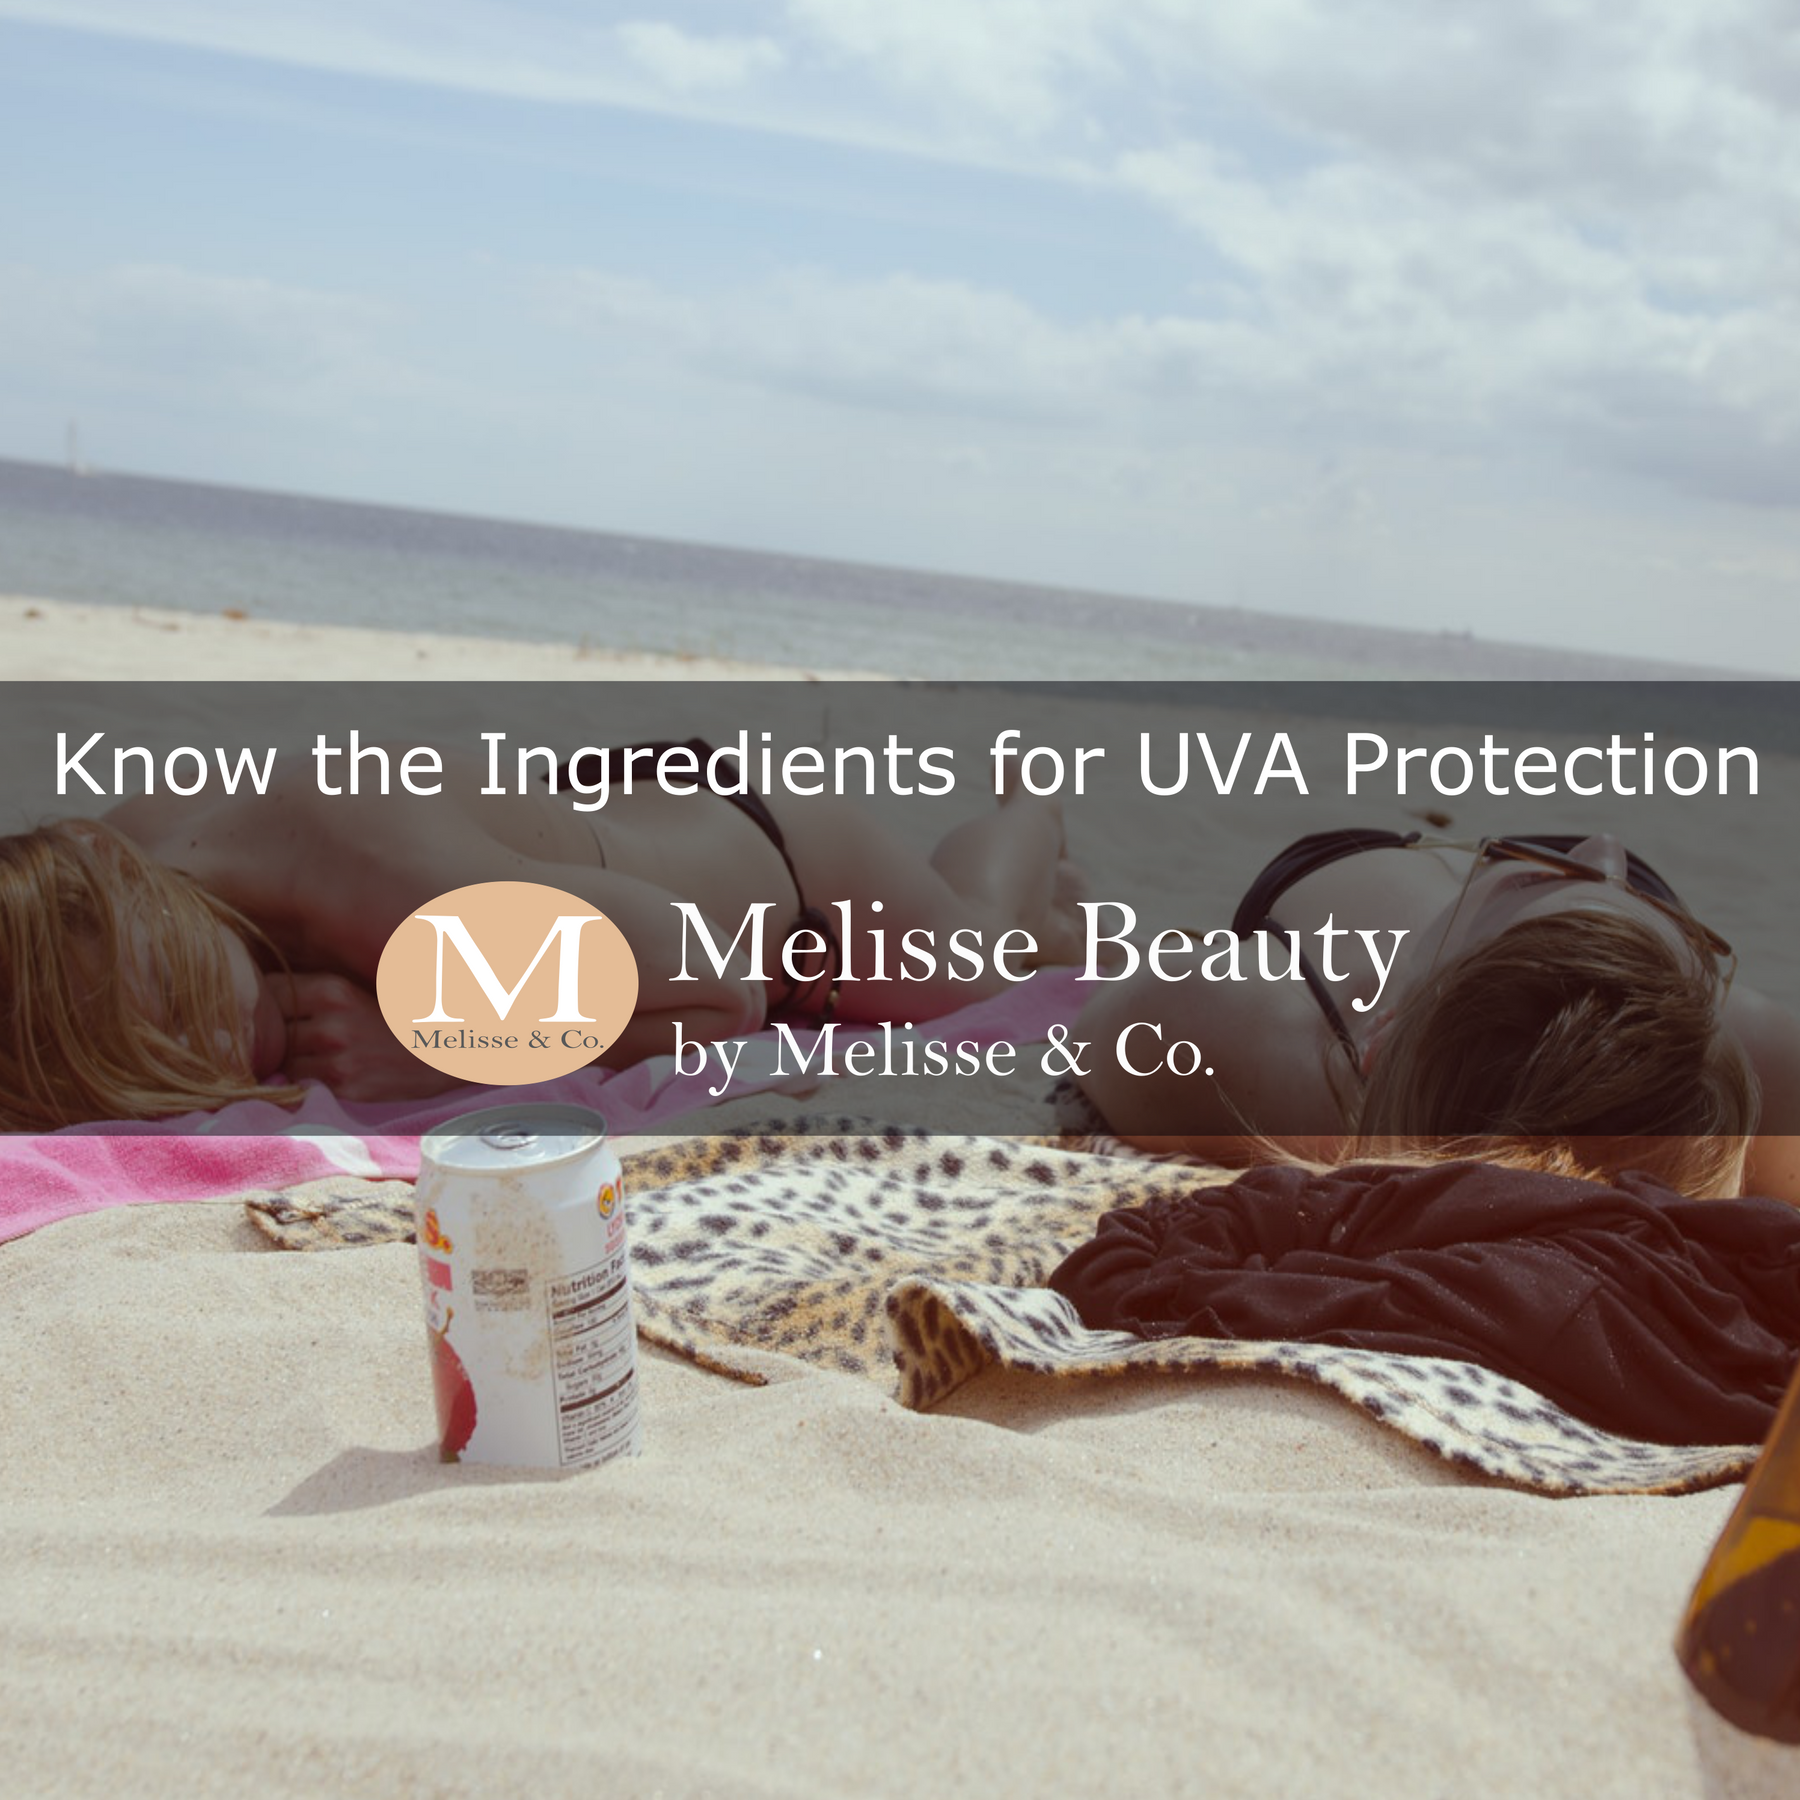 Melisse & Co. - Know the Ingredients for UVA Protection in Sunscreen